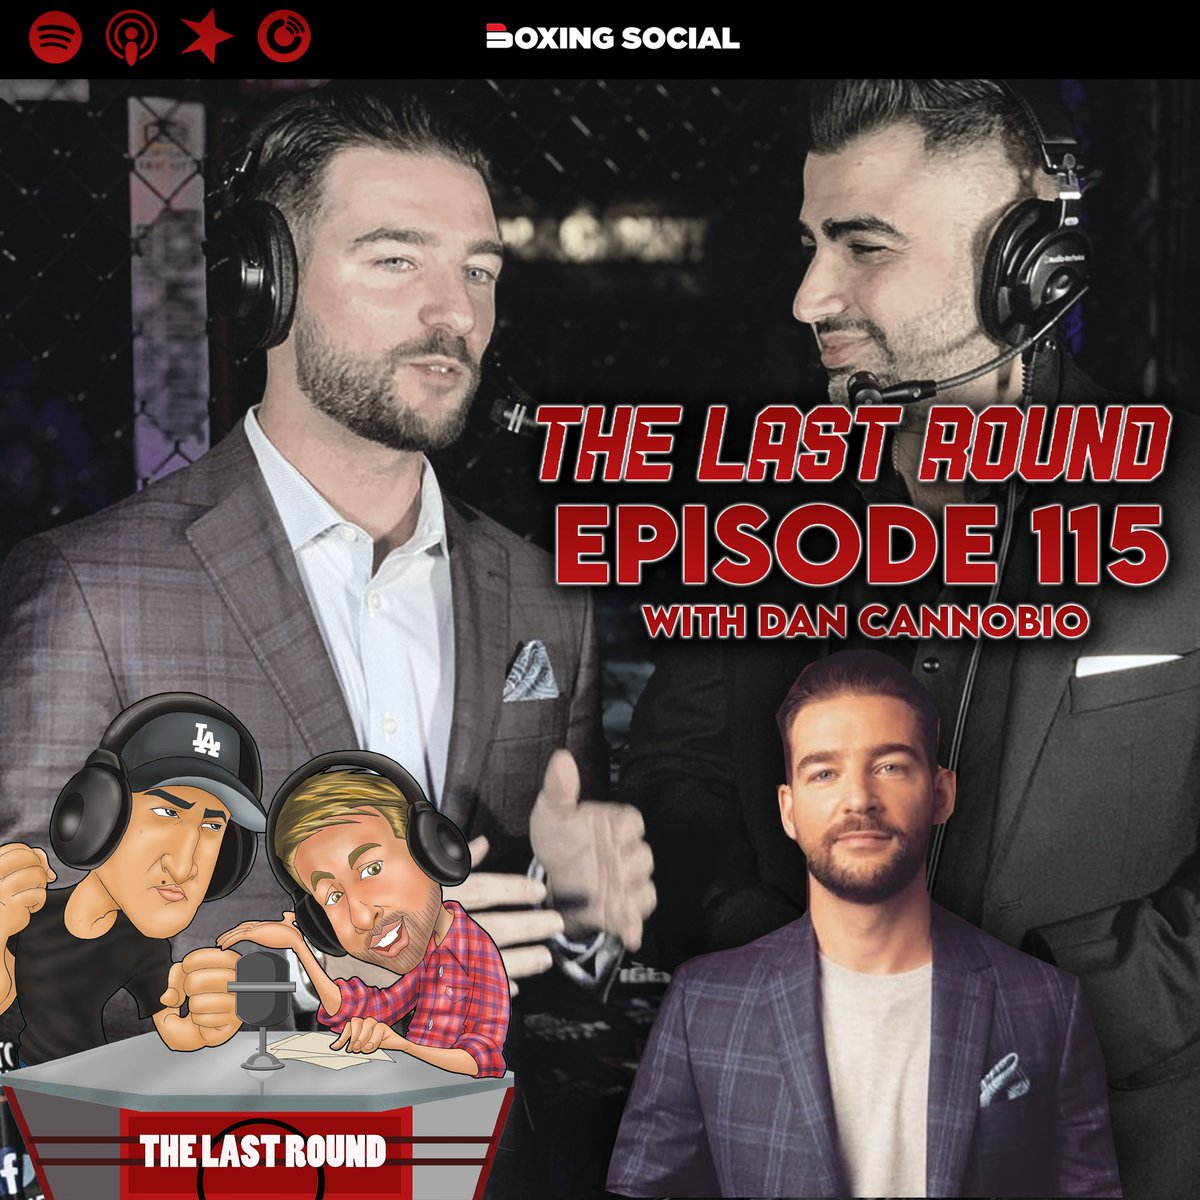 🎙Episode 115- is now LIVE on @ApplePodcasts @Audioboom @Spotify & @boxing_social 📺  Special Guest: @DanCanobbio of @CompuBox we review & preview the weekend's fight #LeoFulton #PlantTruax  ⬇️Listen⬇️  via @Audioboom